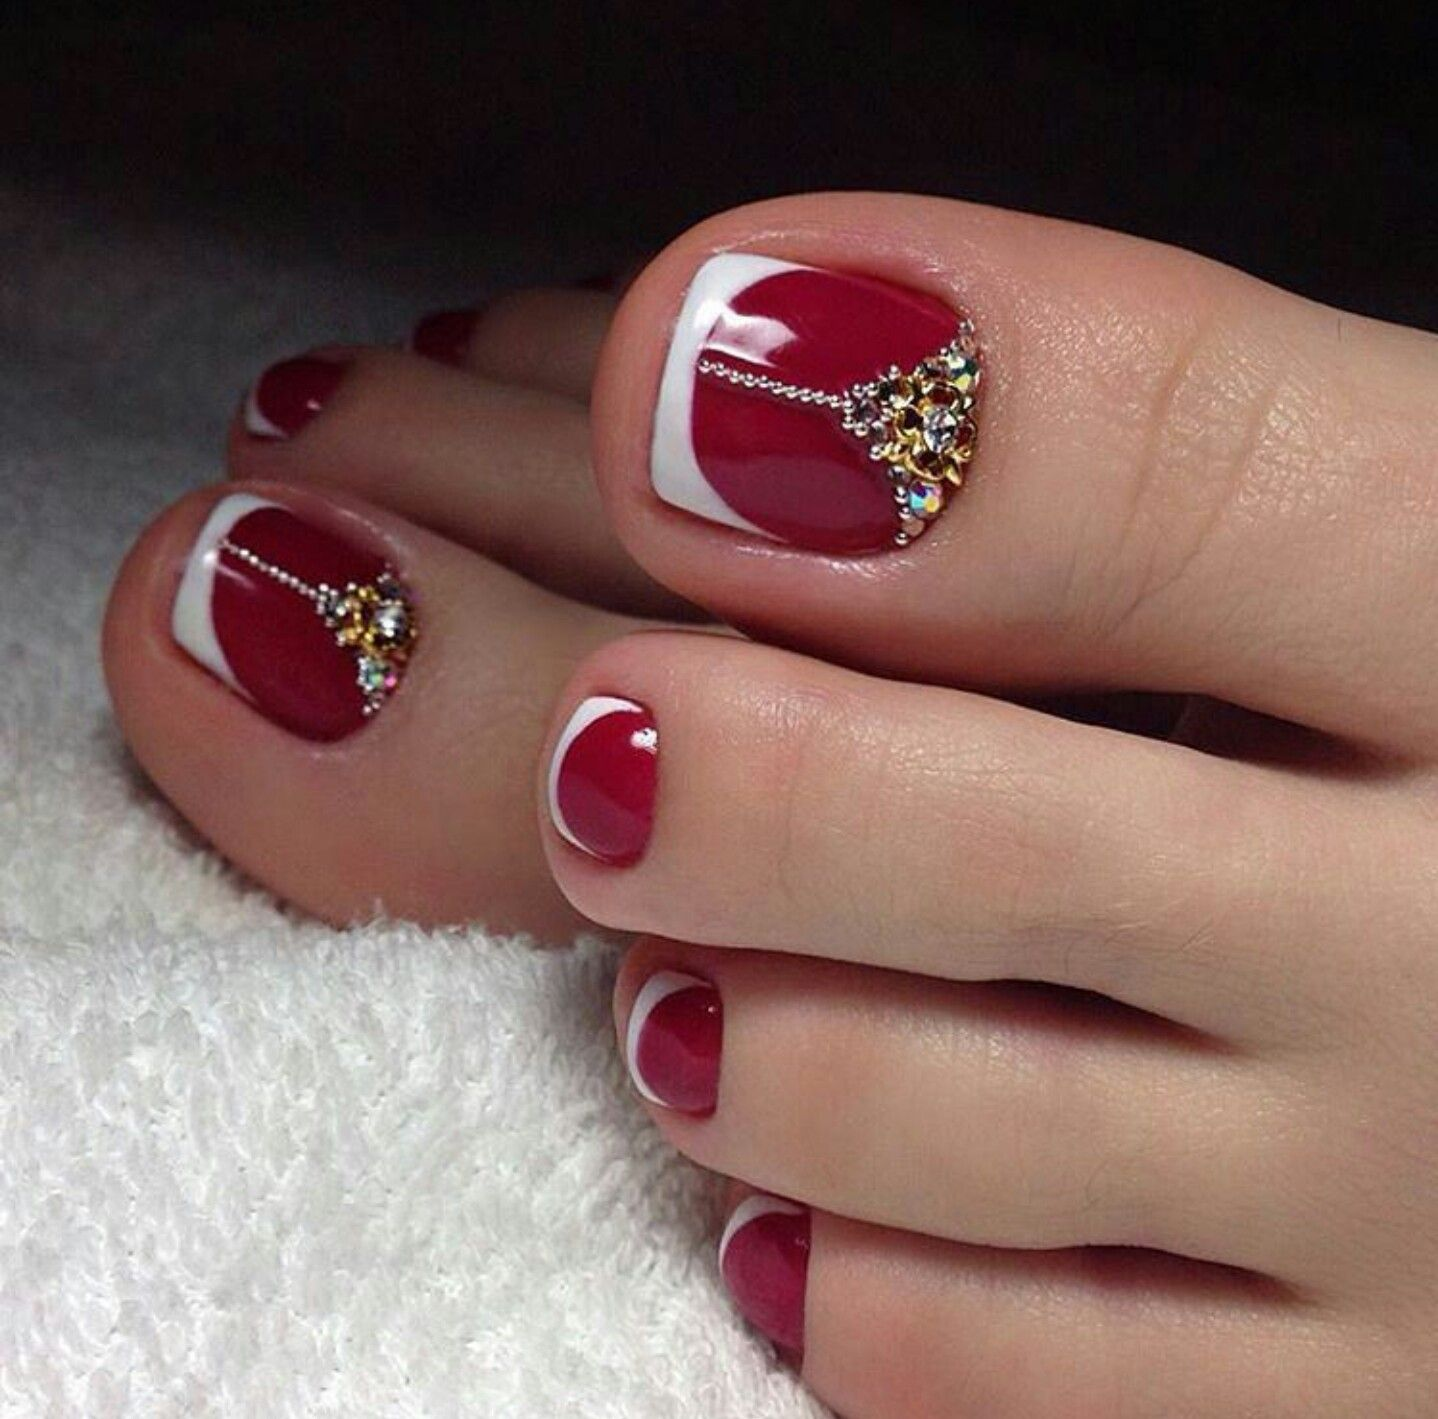 Pin by Наталья on Make up | Pinterest | Pedicures, Pedi and Toe nail art